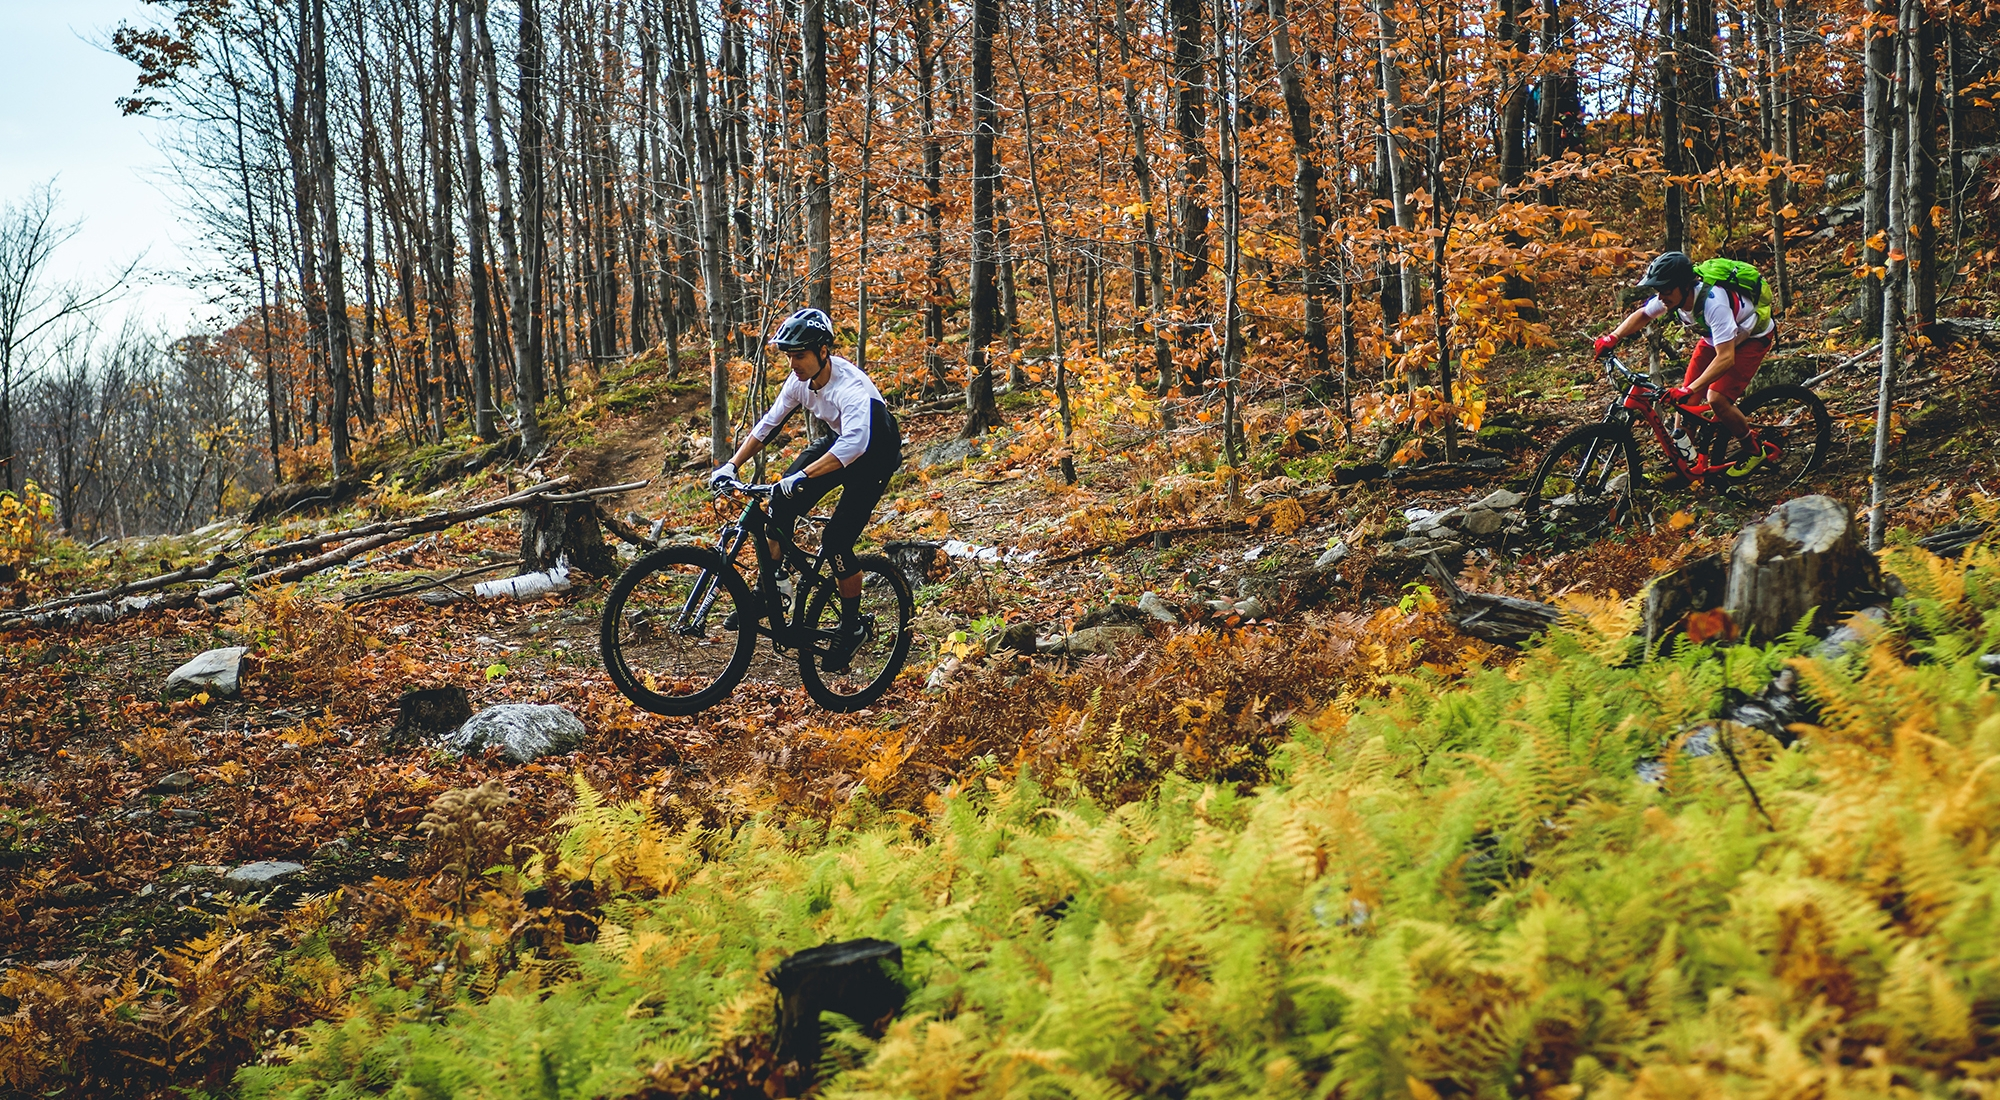 <br /><br />Orbea Seeks Adventure in Quebec